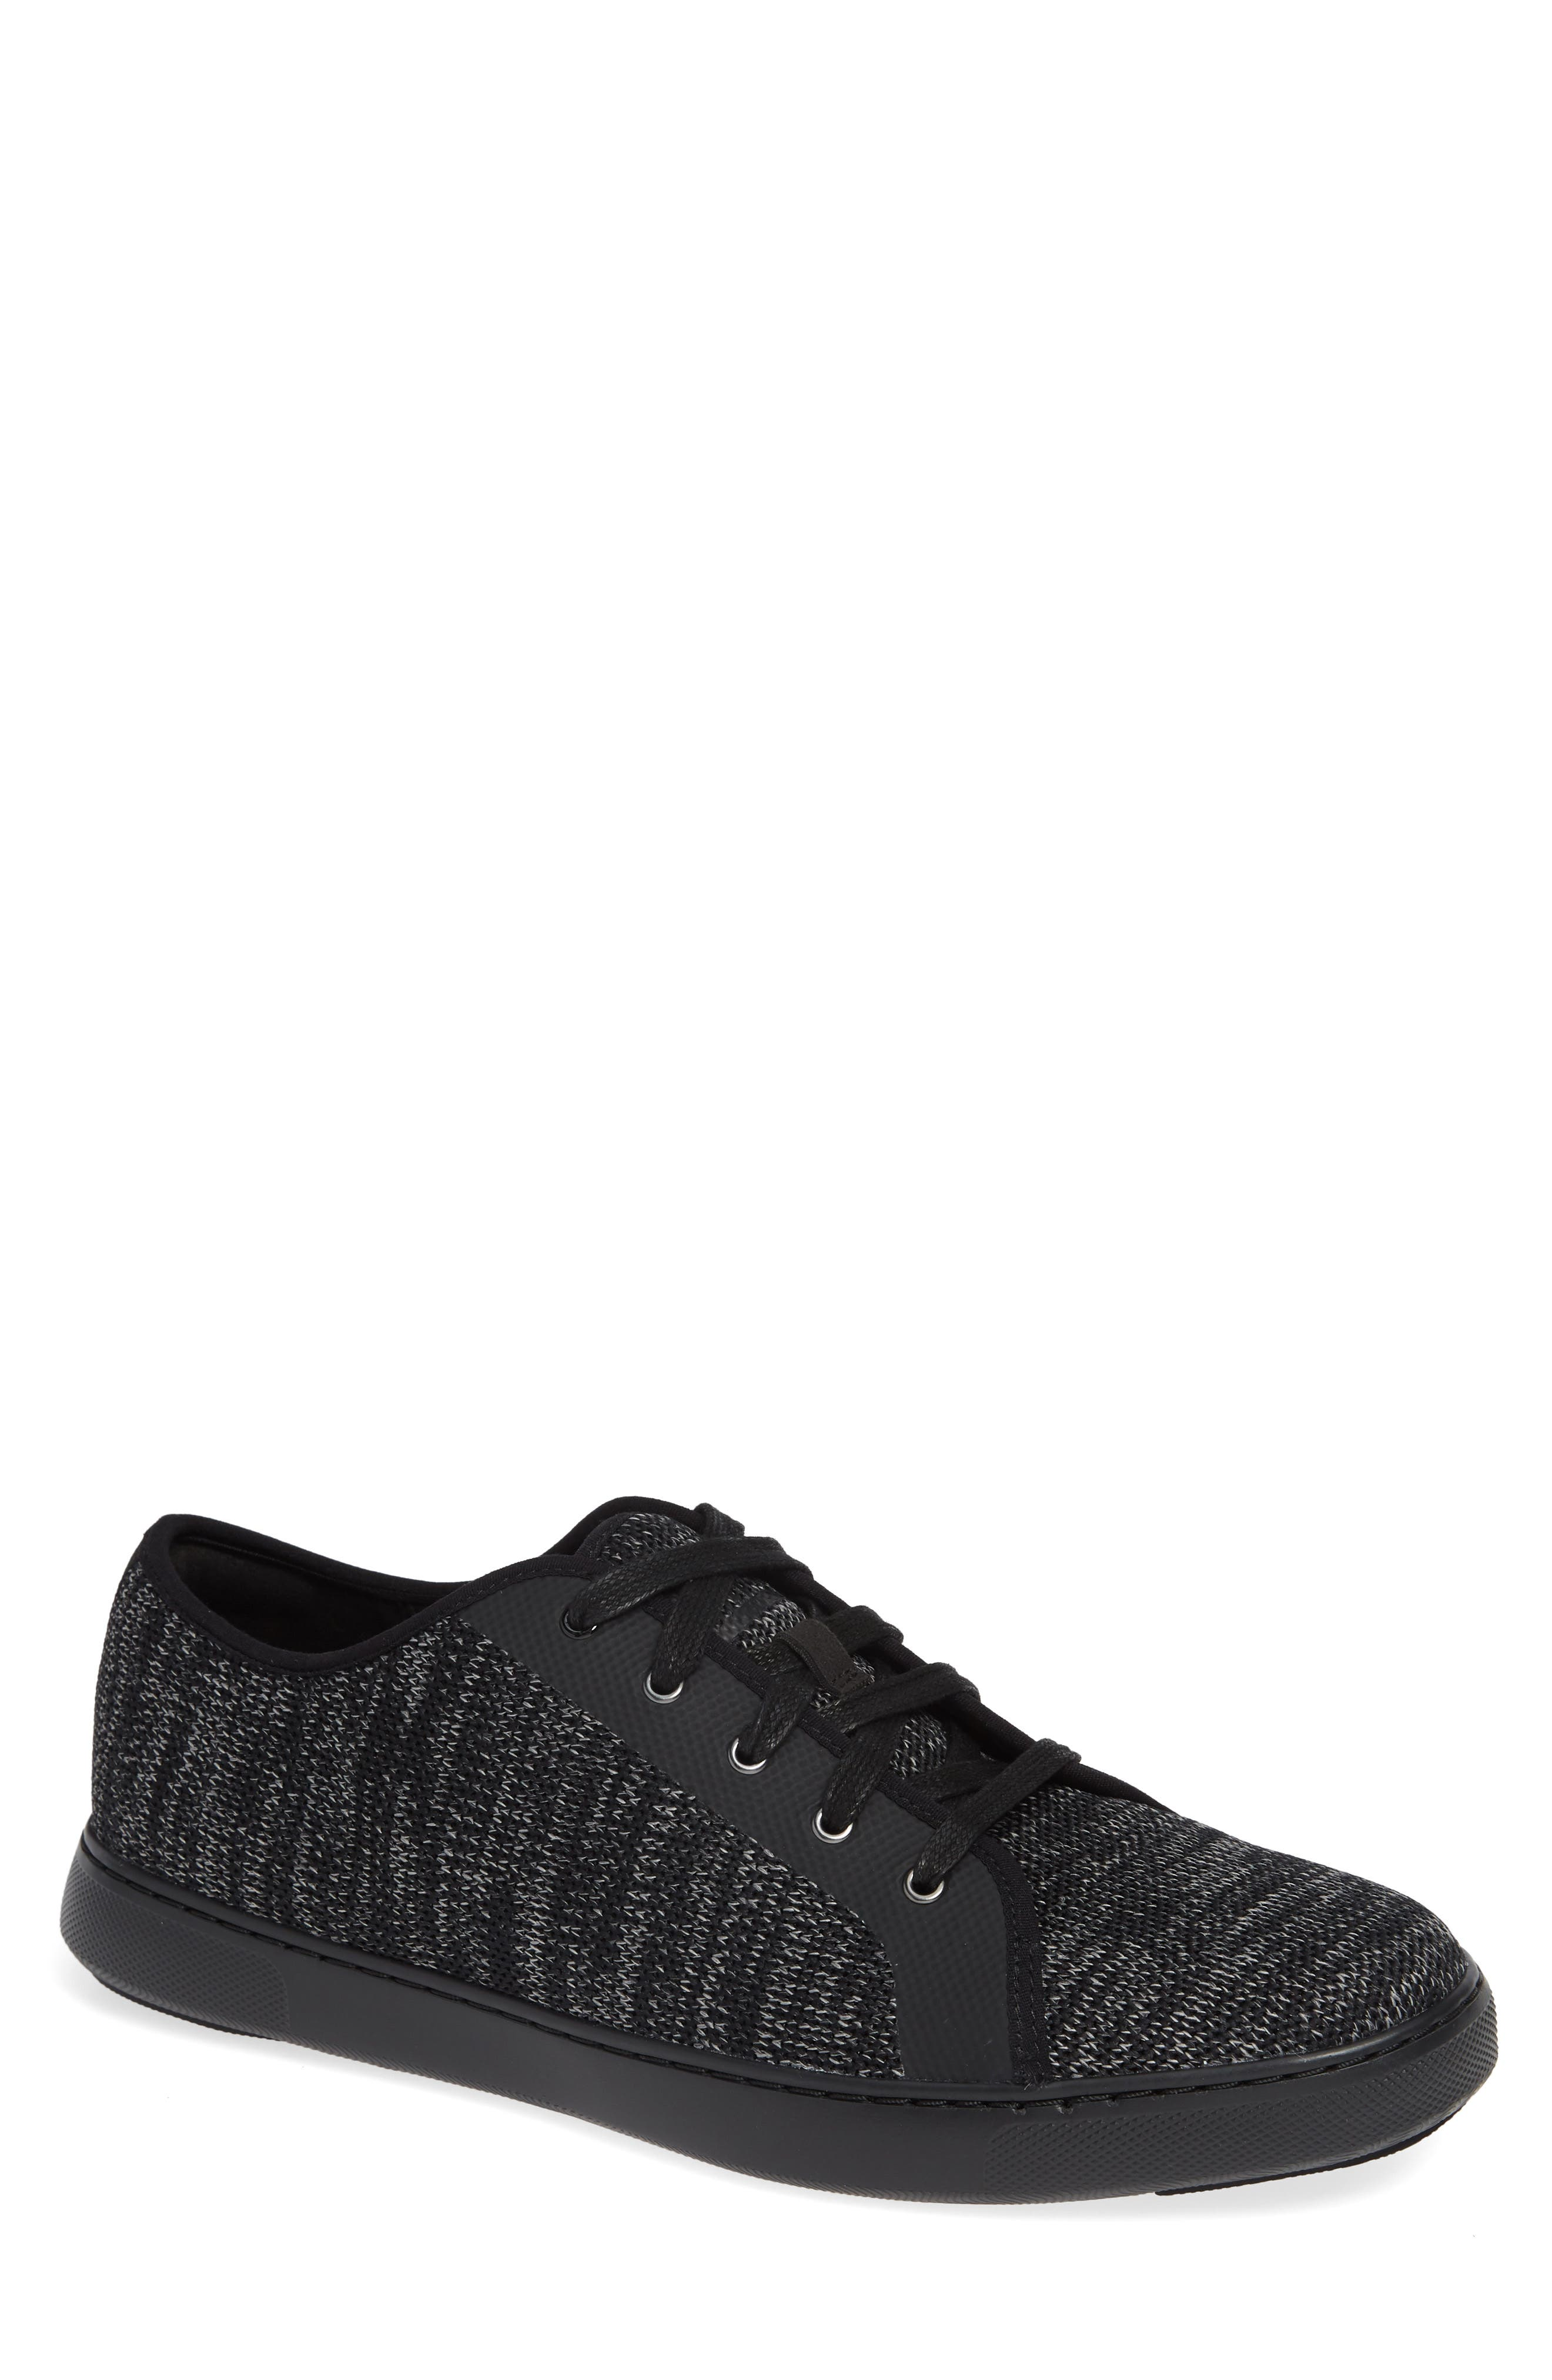 FITFLOP CHRISTOPHE KNIT LACE-UP SNEAKER